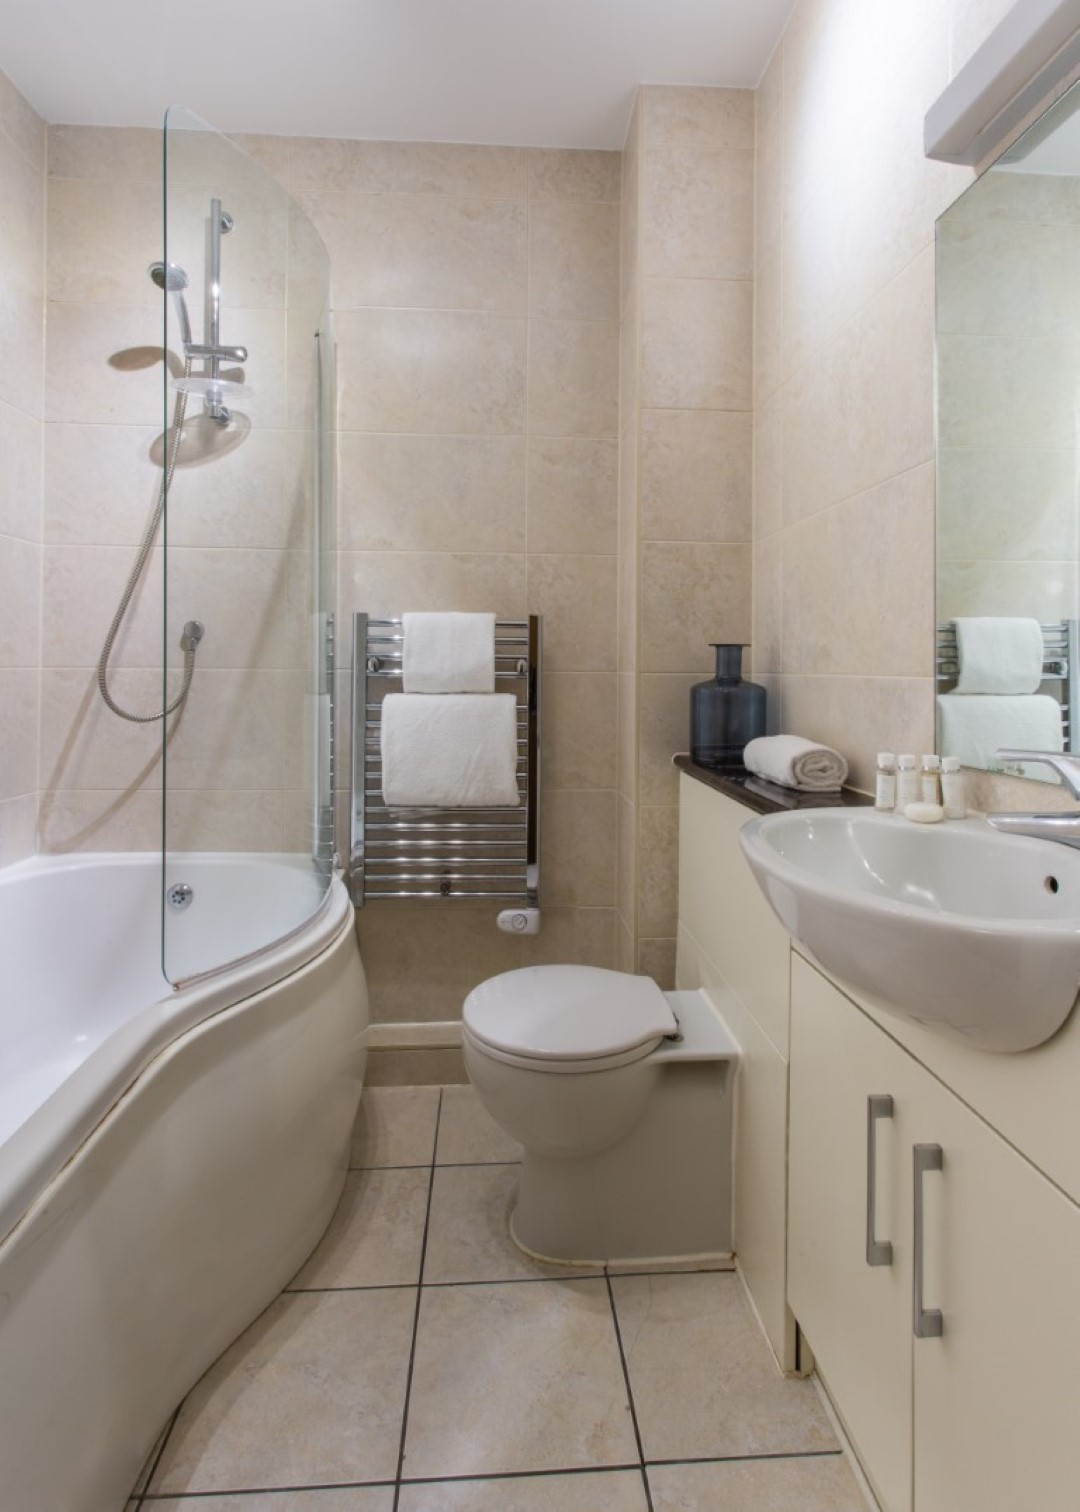 Bathroom at Exchange Buildings Apartments, Centre, Bournemouth - Citybase Apartments